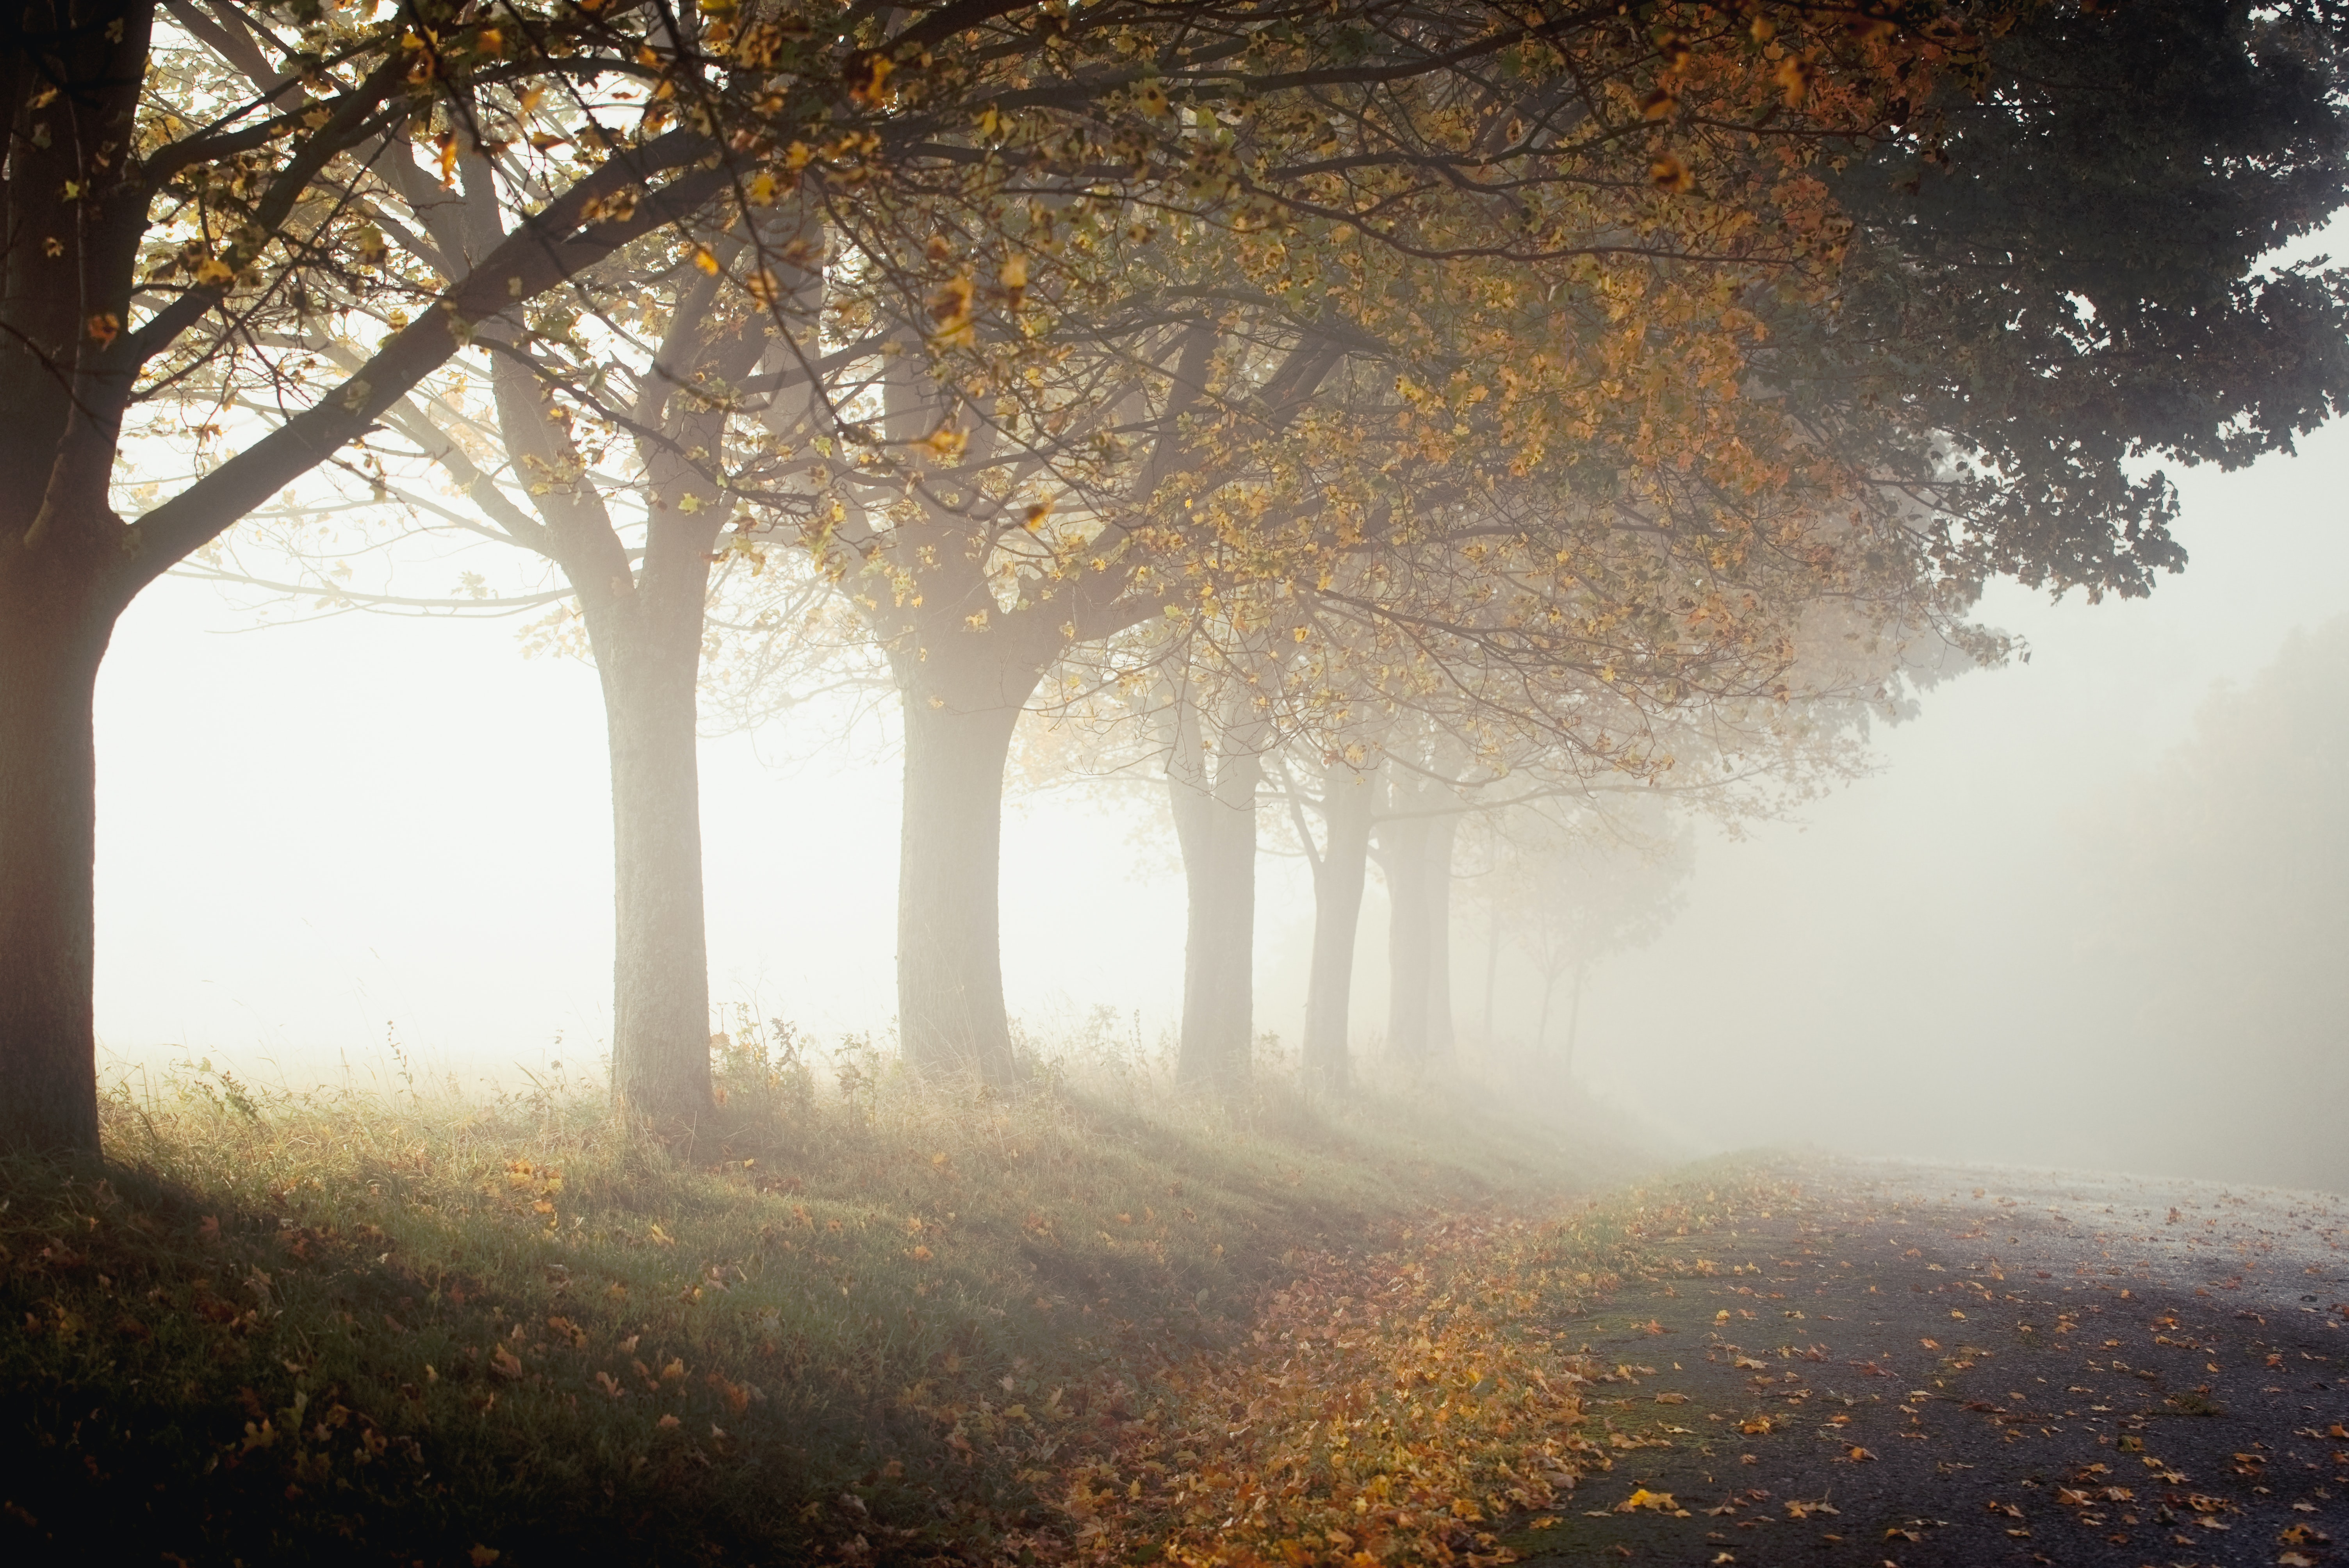 trees with fogs during daytime